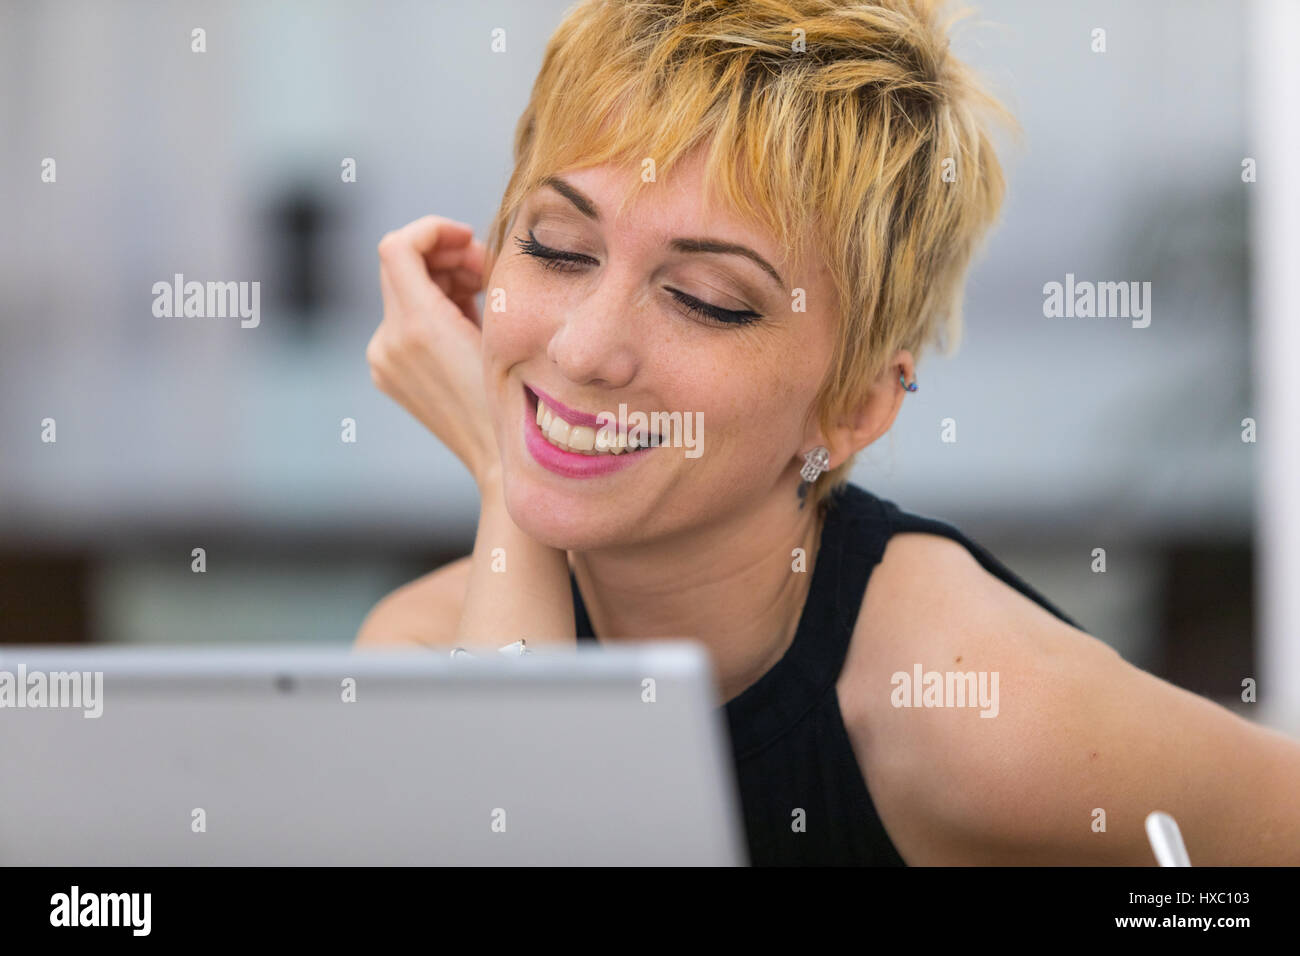 woman in a bar flirting or chatting in a video conference call, concept of online dating or conference - Stock Image